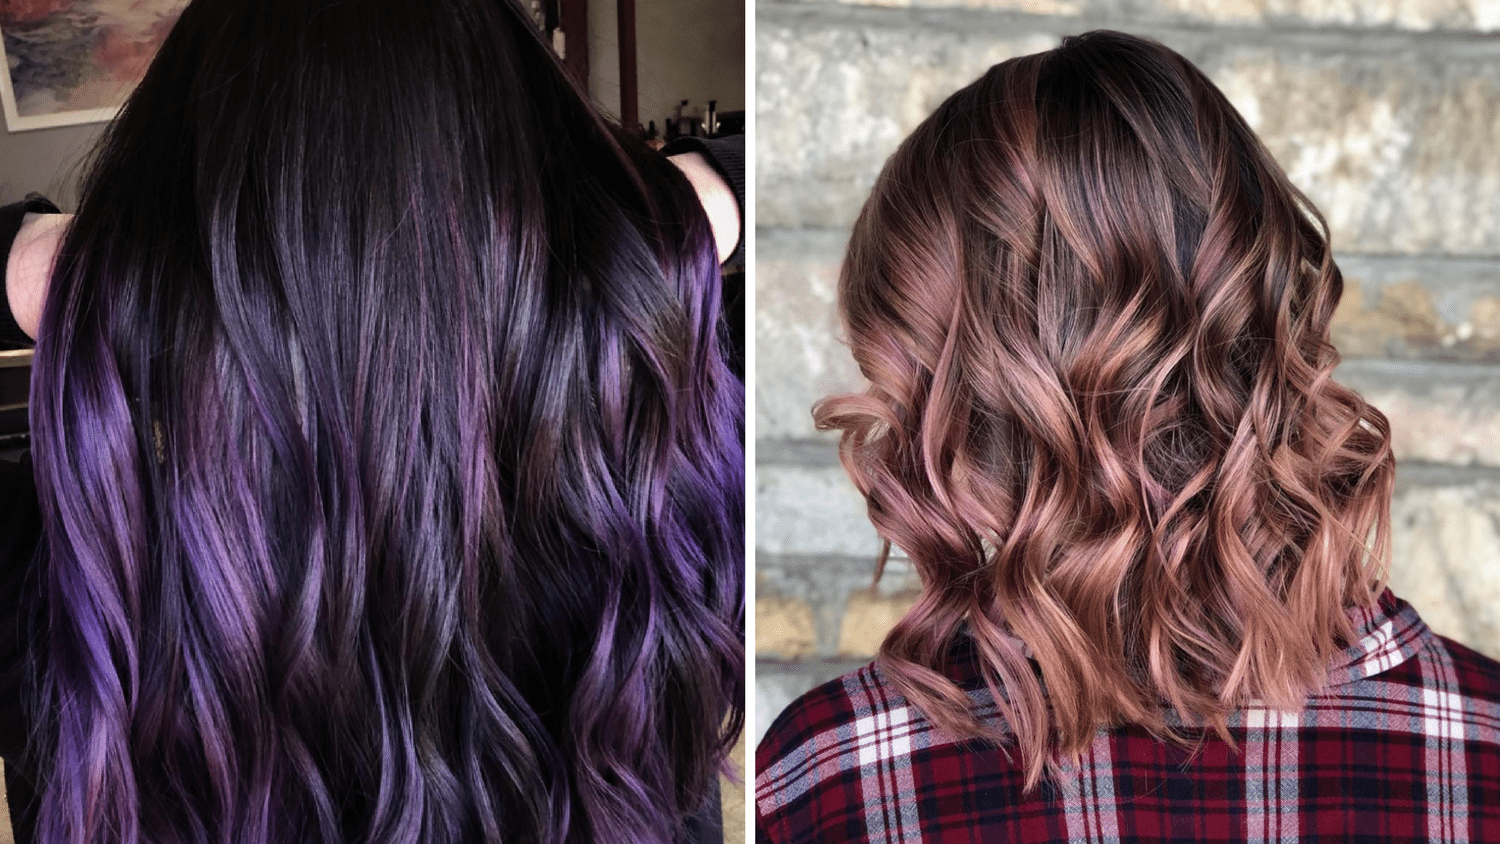 Trendy Hair Colors To Try Right Now